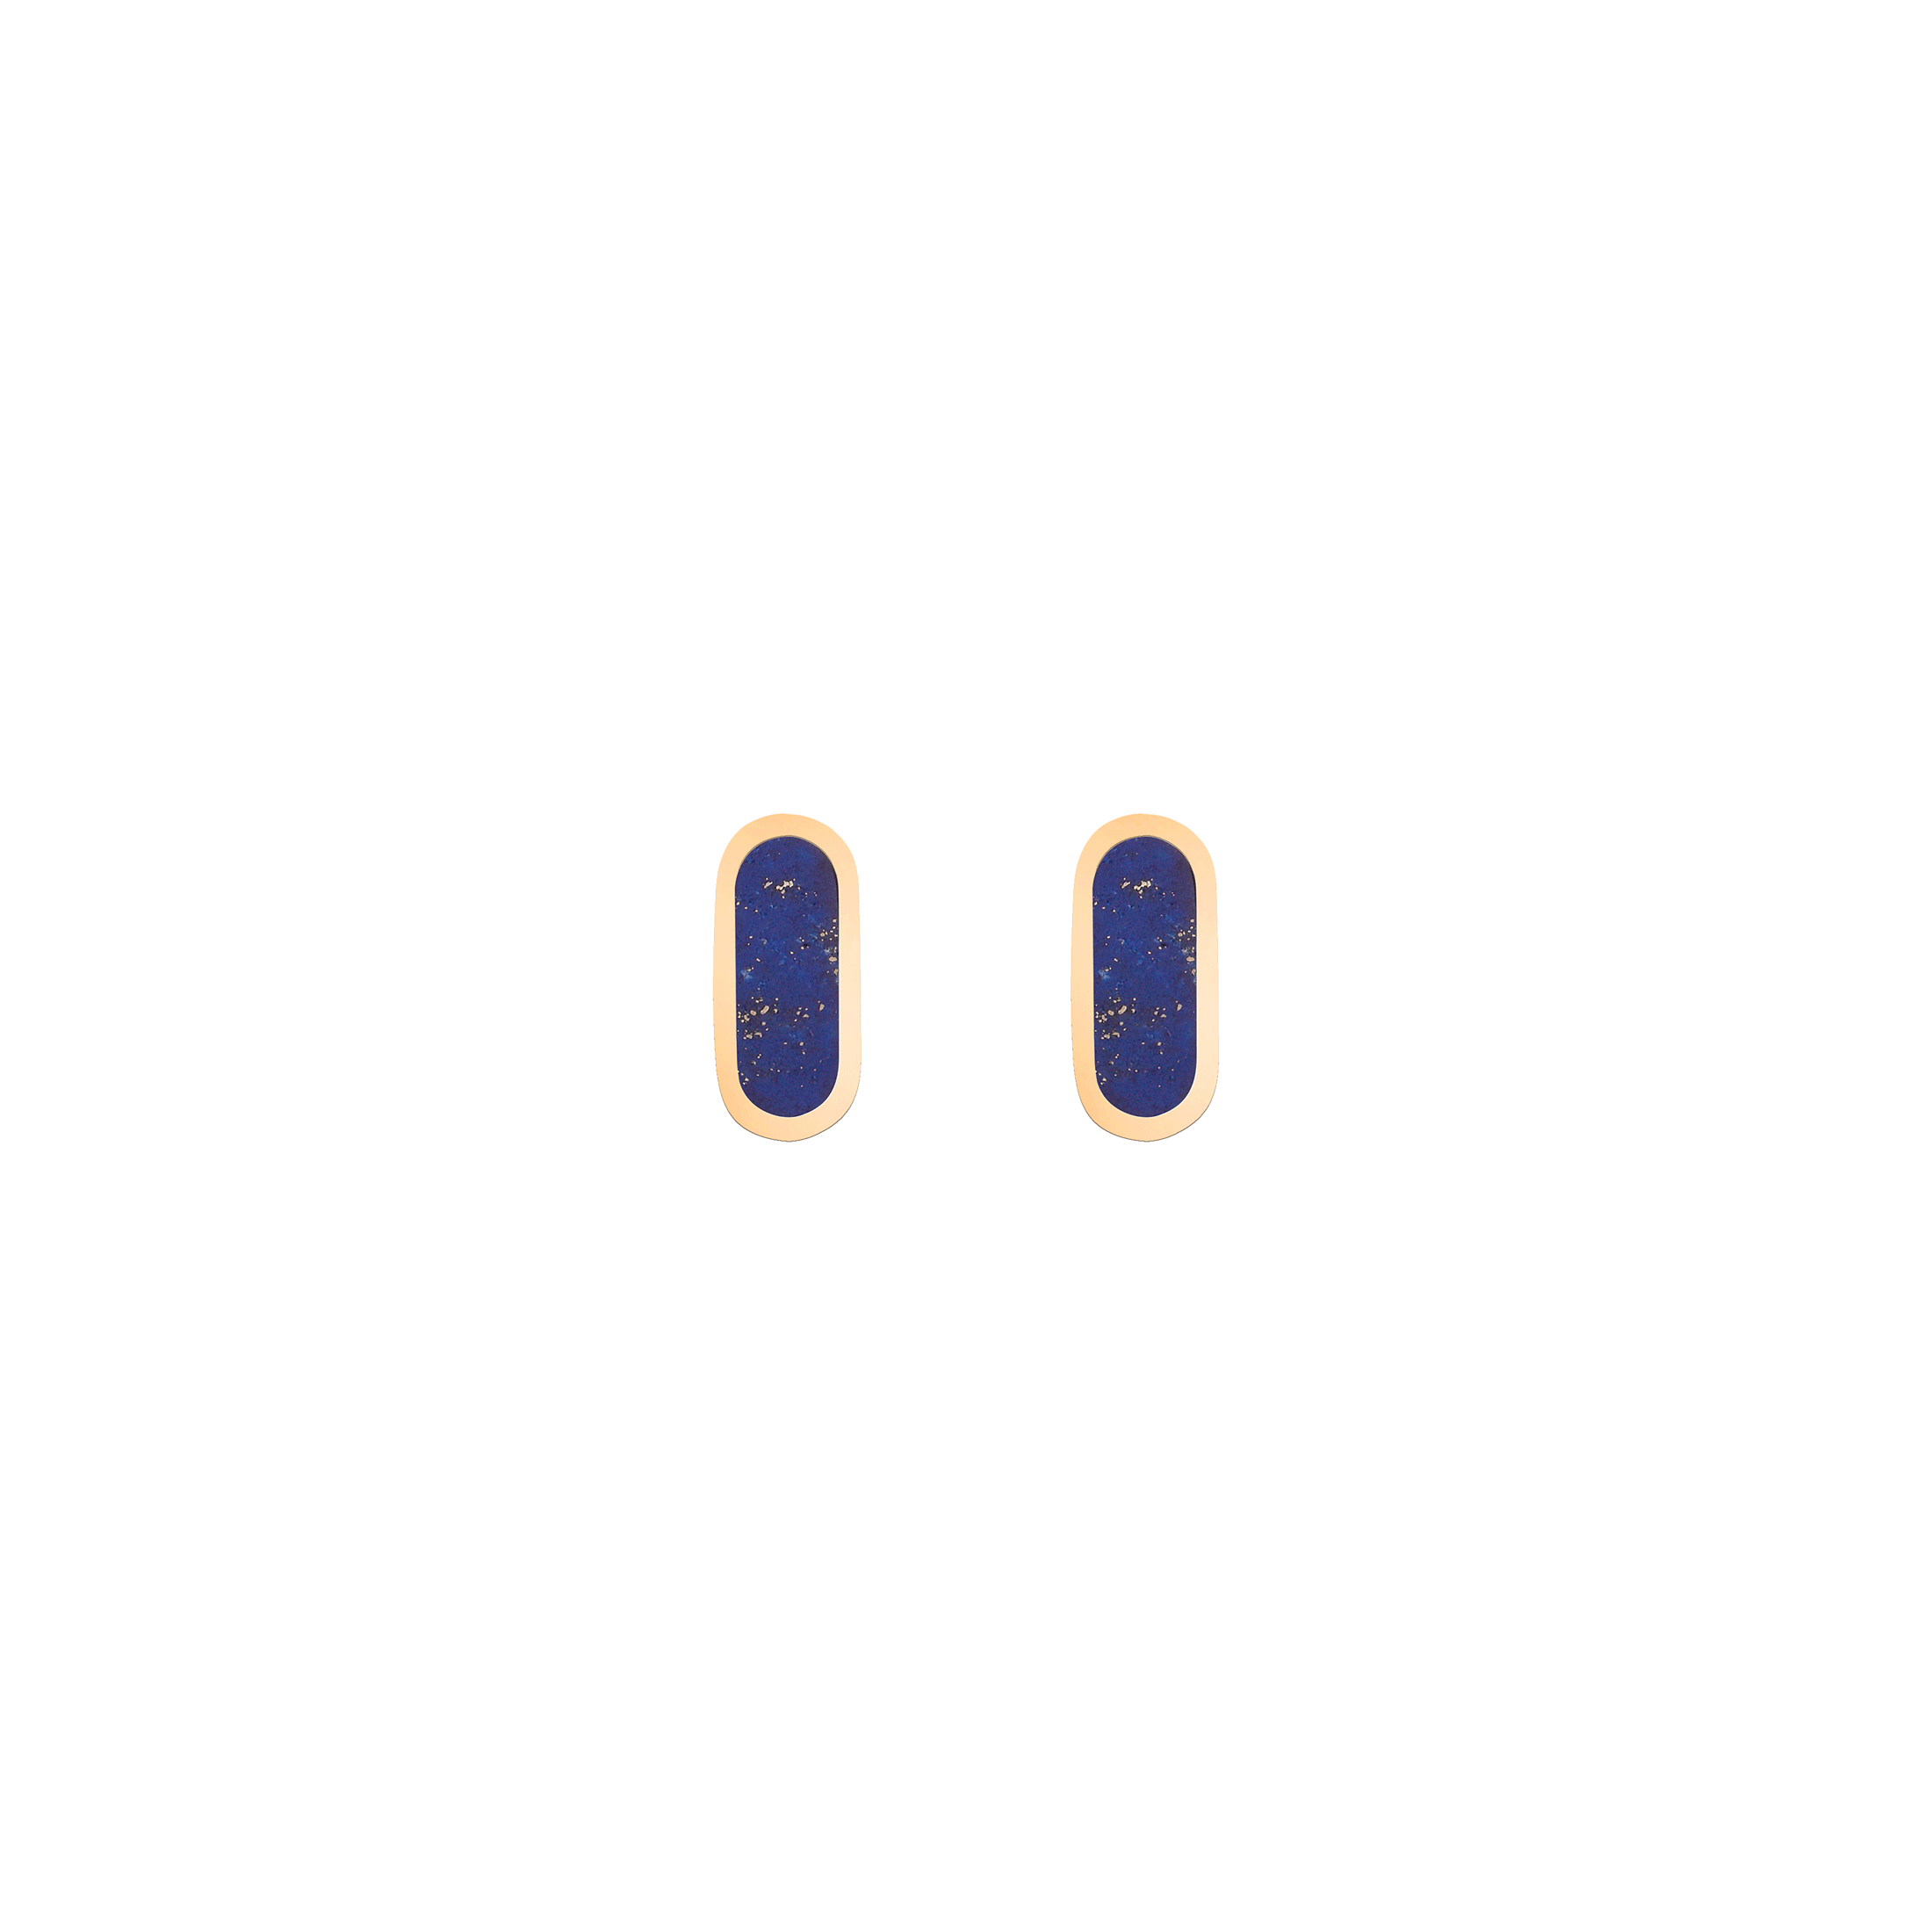 So Shocking Première fois Earrings gold and lapis lazuli